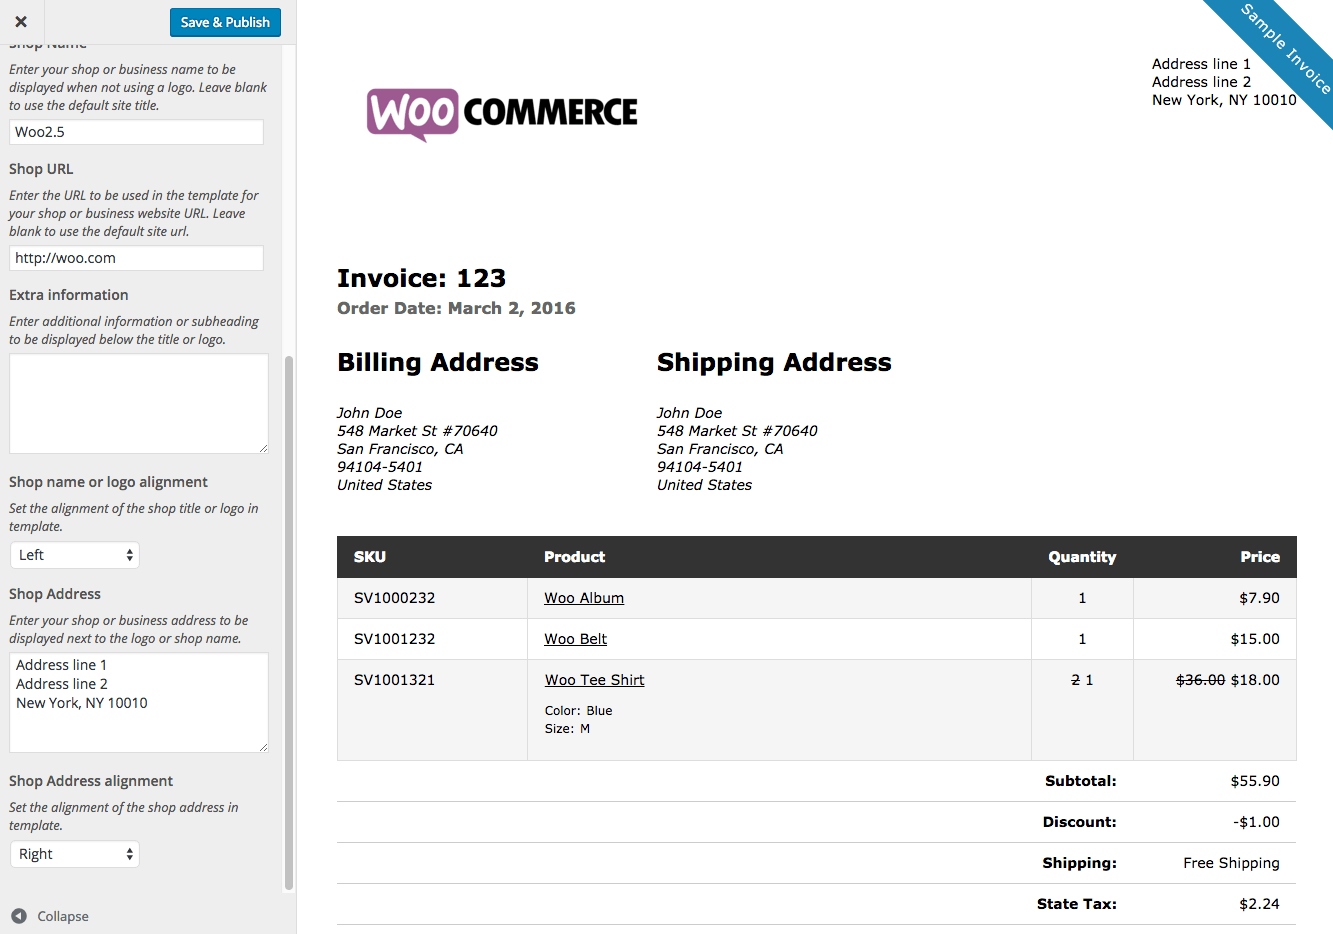 Usdgus  Sweet Print Invoices Amp Packing Lists  Woocommerce With Luxury Woocommerce Print Invoices  Packing Lists Customizer With Amusing Transaction Receipt Template Also Receipt For Sale Of Vehicle In Addition Best Receipt Scanner App For Iphone And Printable Rental Receipt As Well As Delaware Division Of Revenue Gross Receipts Additionally How To Write A Sales Receipt From Woocommercecom With Usdgus  Luxury Print Invoices Amp Packing Lists  Woocommerce With Amusing Woocommerce Print Invoices  Packing Lists Customizer And Sweet Transaction Receipt Template Also Receipt For Sale Of Vehicle In Addition Best Receipt Scanner App For Iphone From Woocommercecom